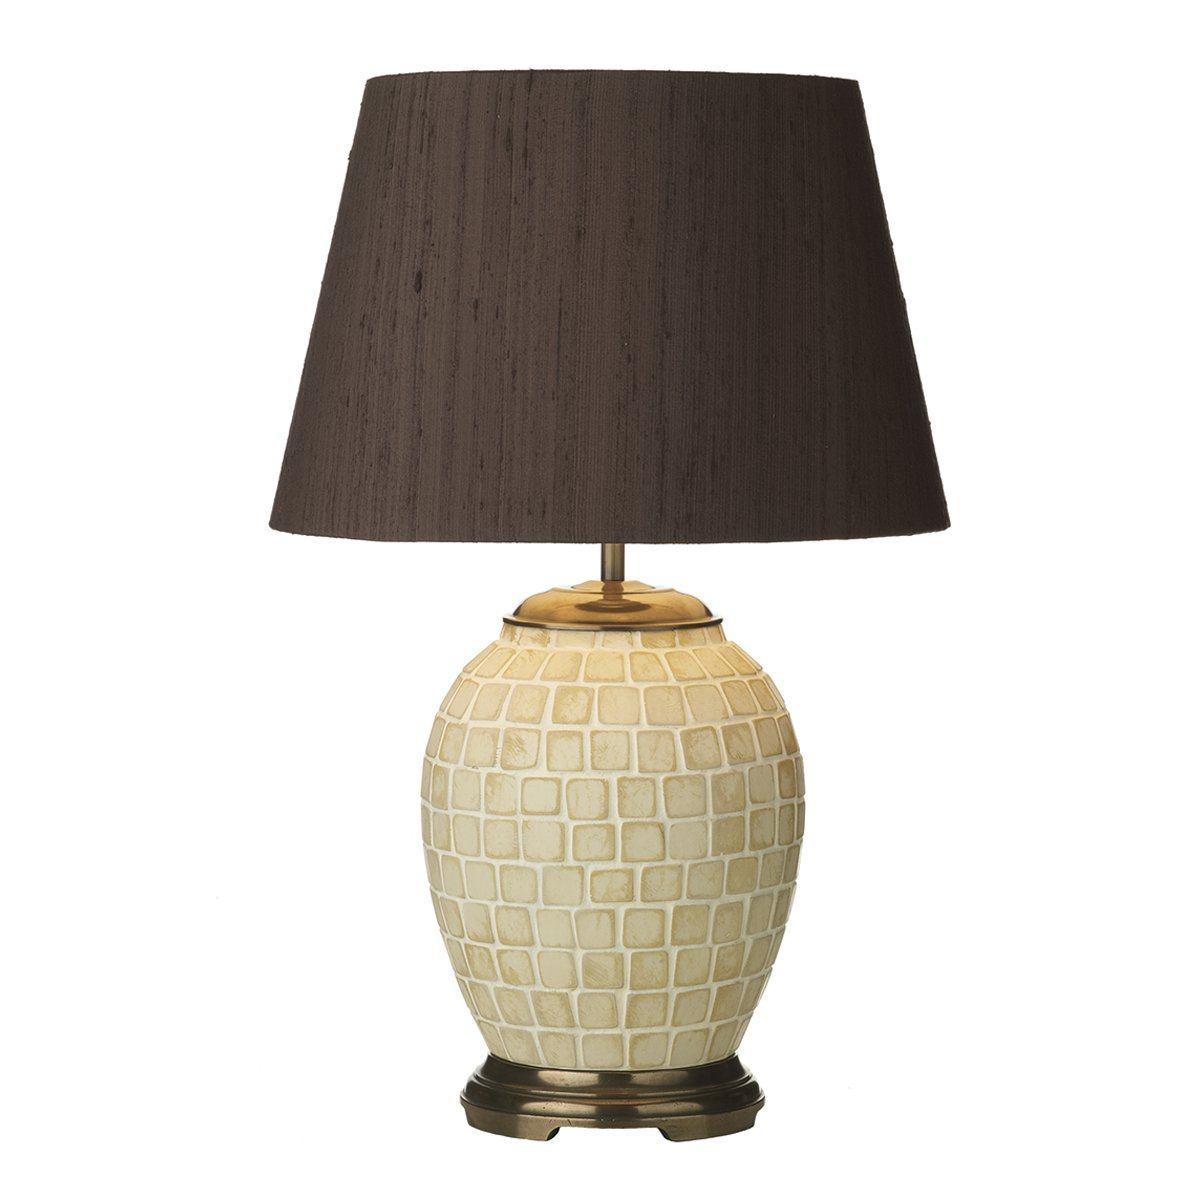 Dar Zuccaro Small Table Lamp Base Only At Barnitts Online Store Uk Barnitts